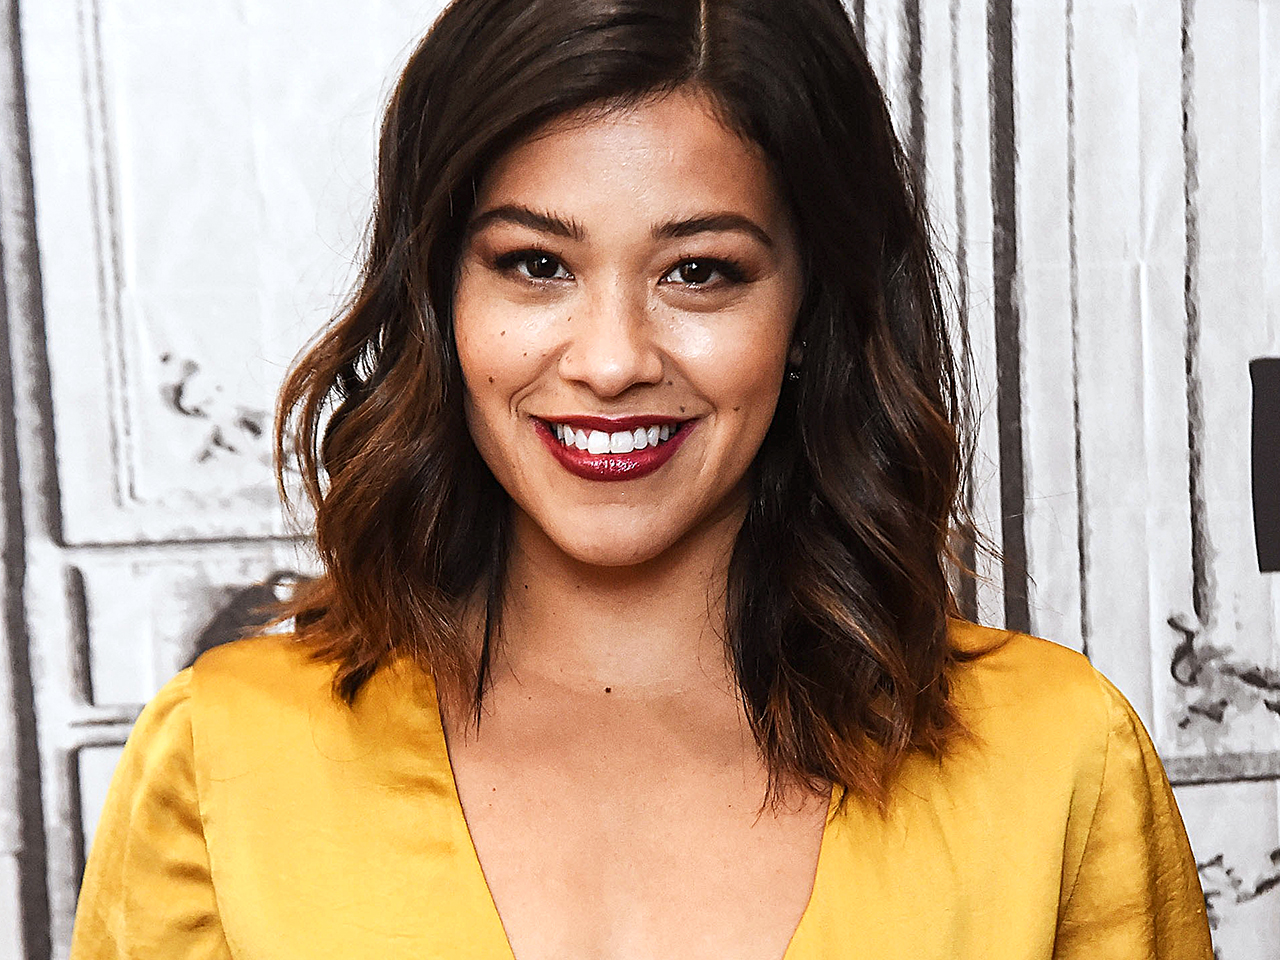 Gina Rodriguez to star in Netflix film 'Someone Great'